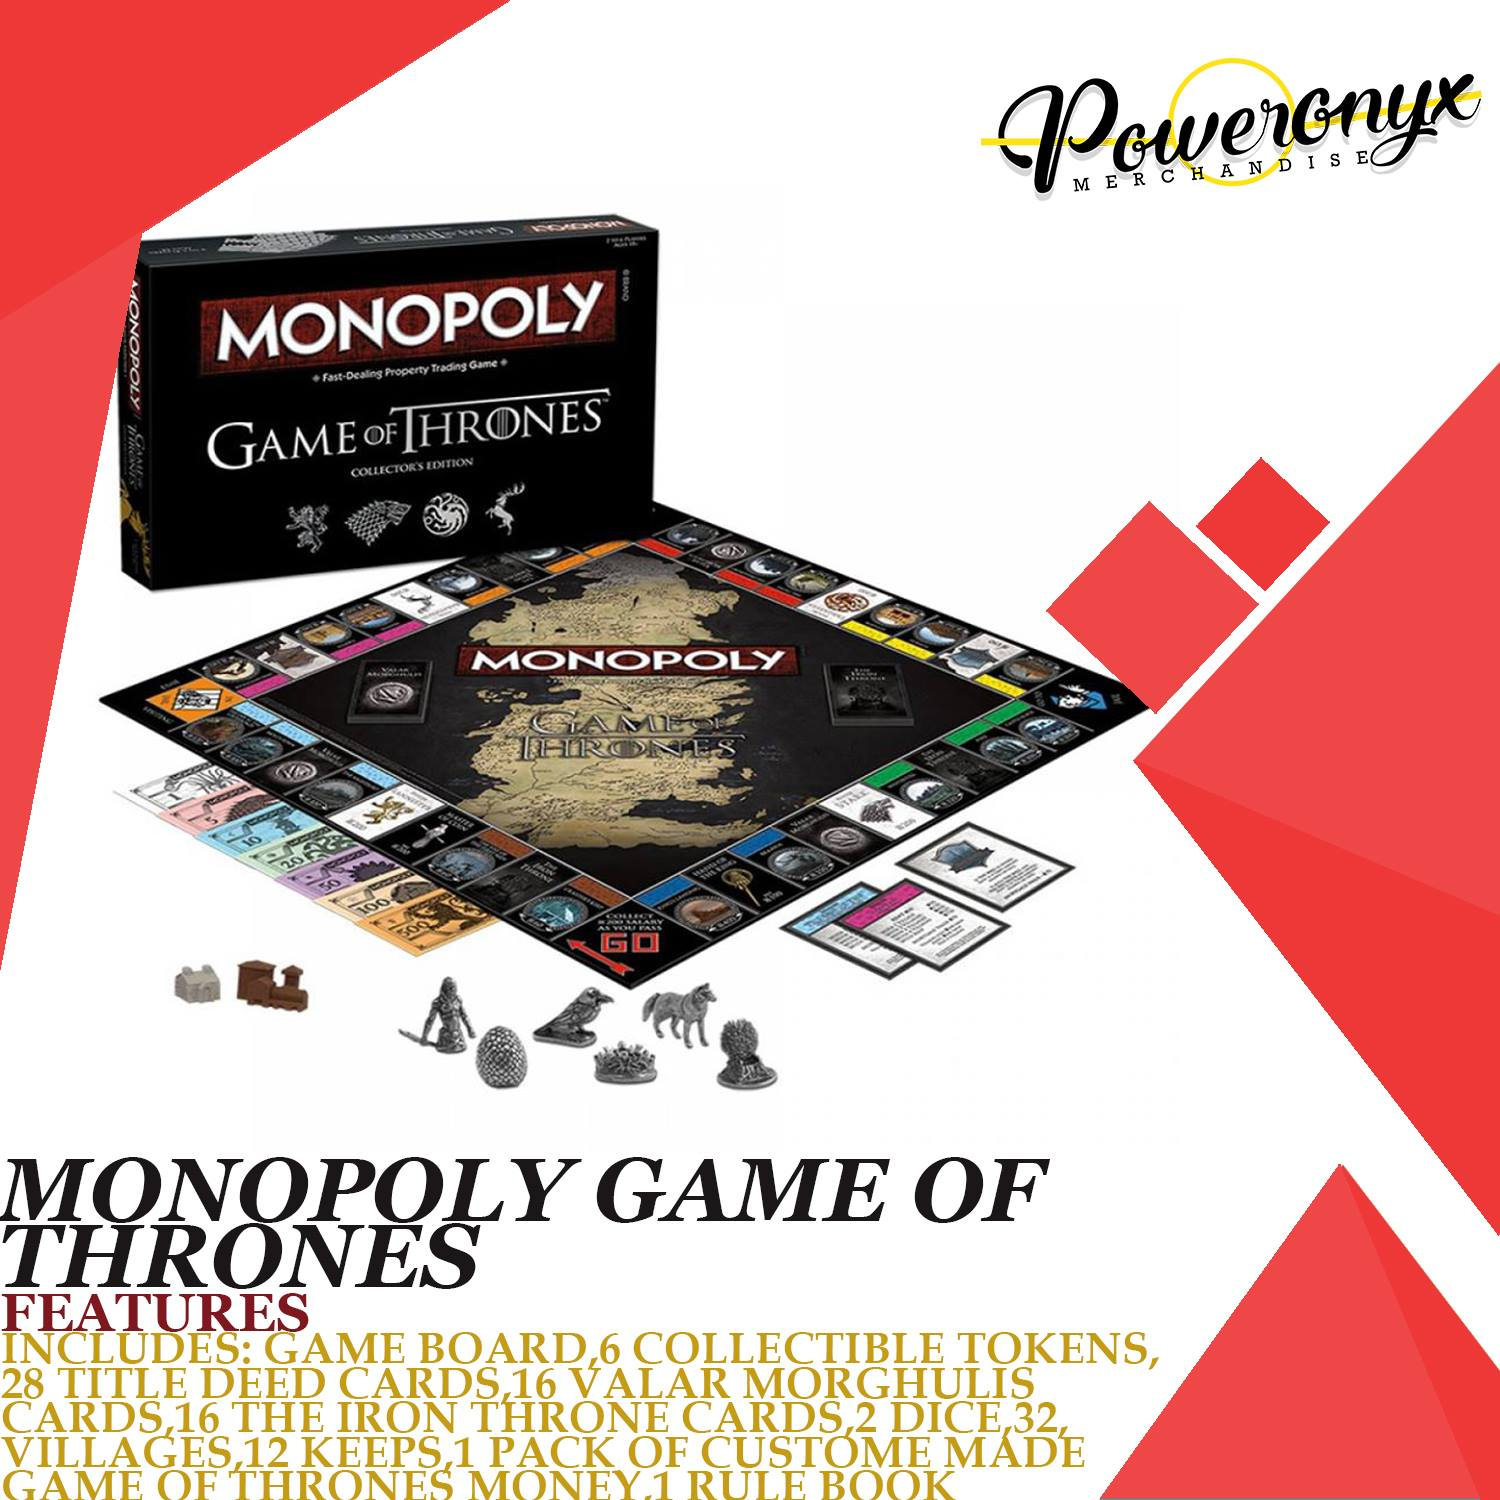 Monopoly Game Of Thrones Buy Sell Online Board Games With Cheap Price Lazada Ph